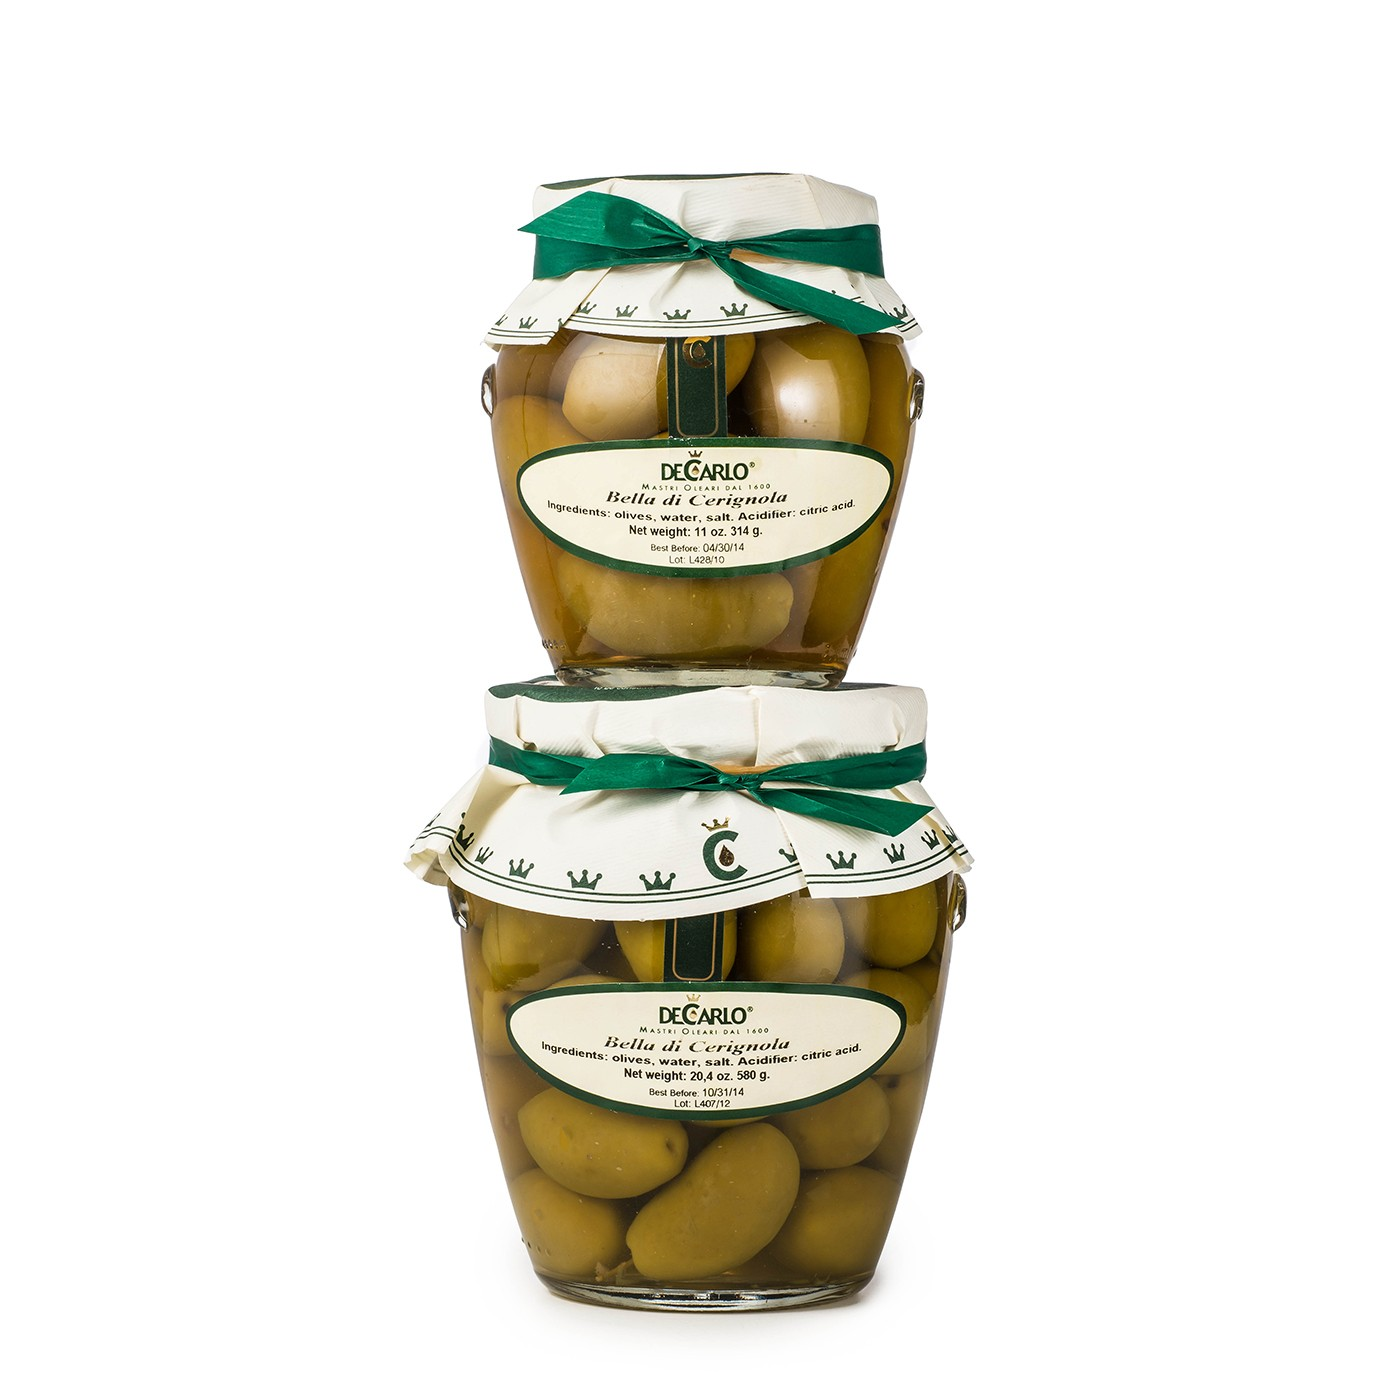 Bella Cerignola Olives 11.1 oz